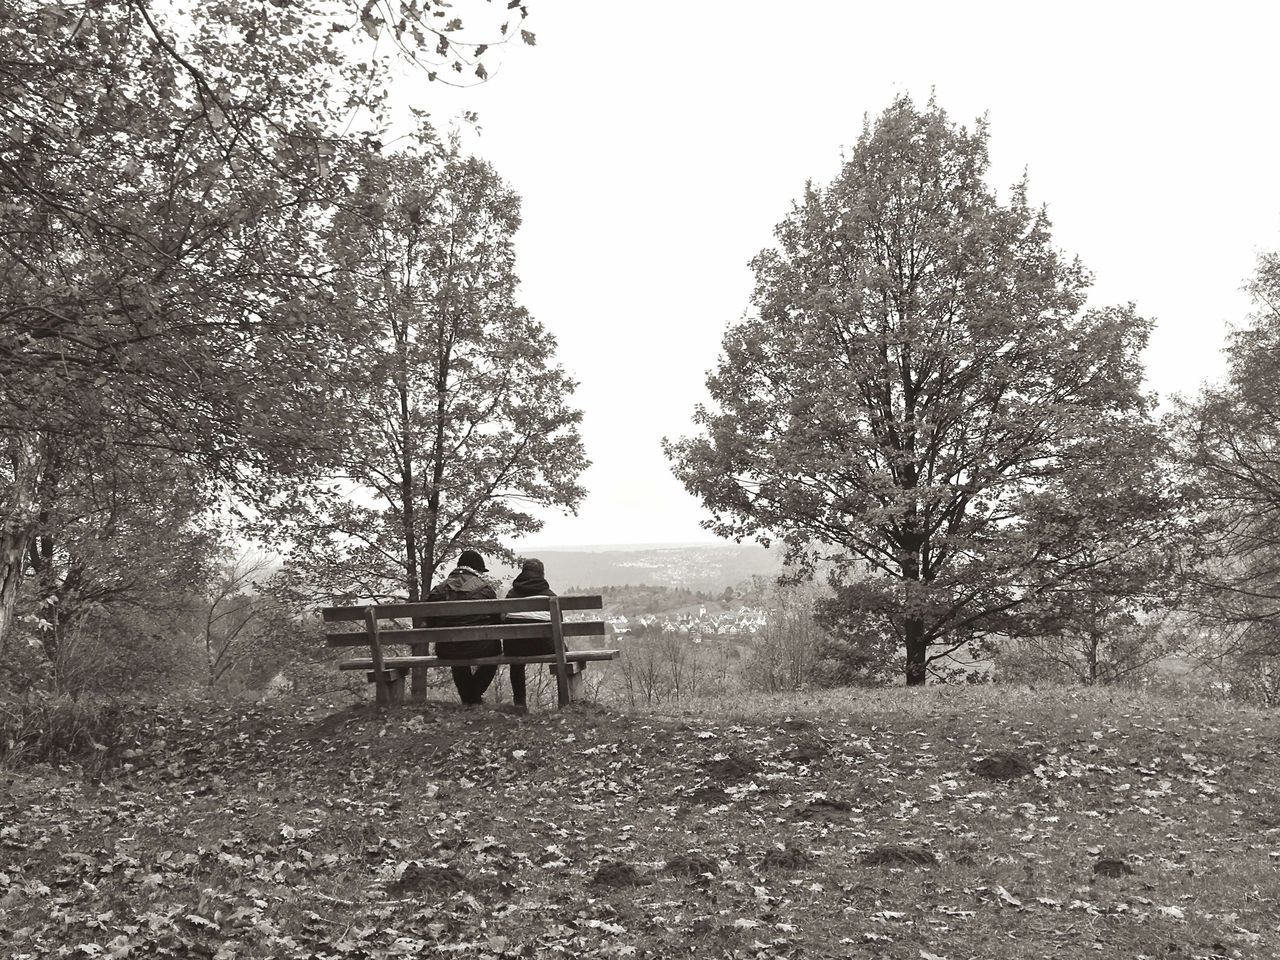 tree, plant, bench, seat, nature, day, land, field, sky, tranquility, park, growth, beauty in nature, outdoors, tranquil scene, landscape, musical instrument, environment, clear sky, sitting, park bench